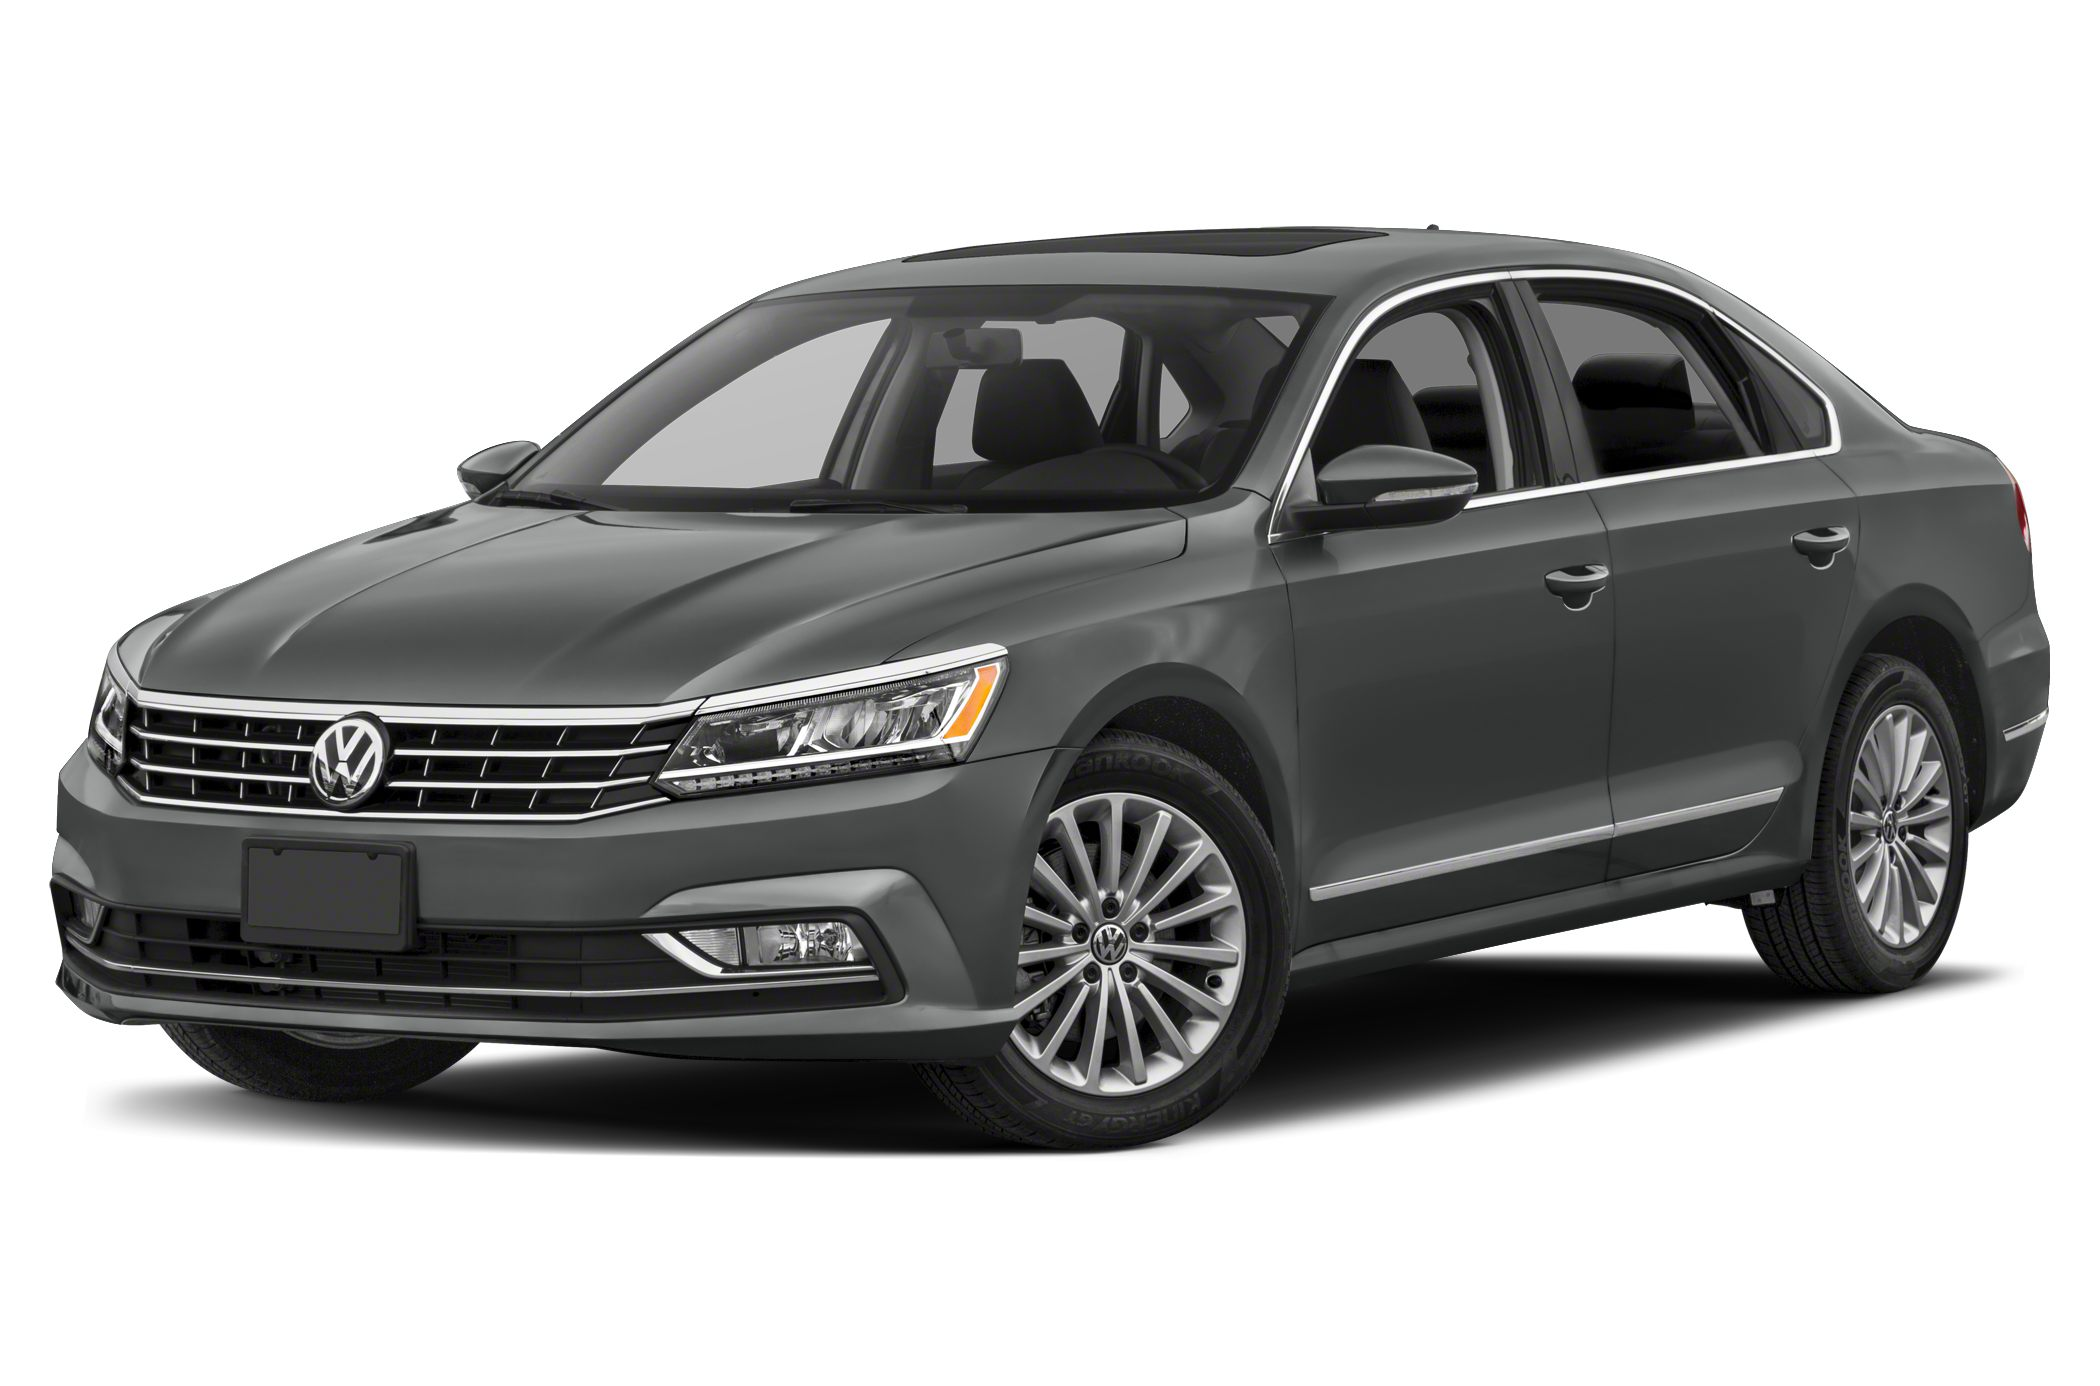 2016 volkswagen passat first drive autoblog. Black Bedroom Furniture Sets. Home Design Ideas